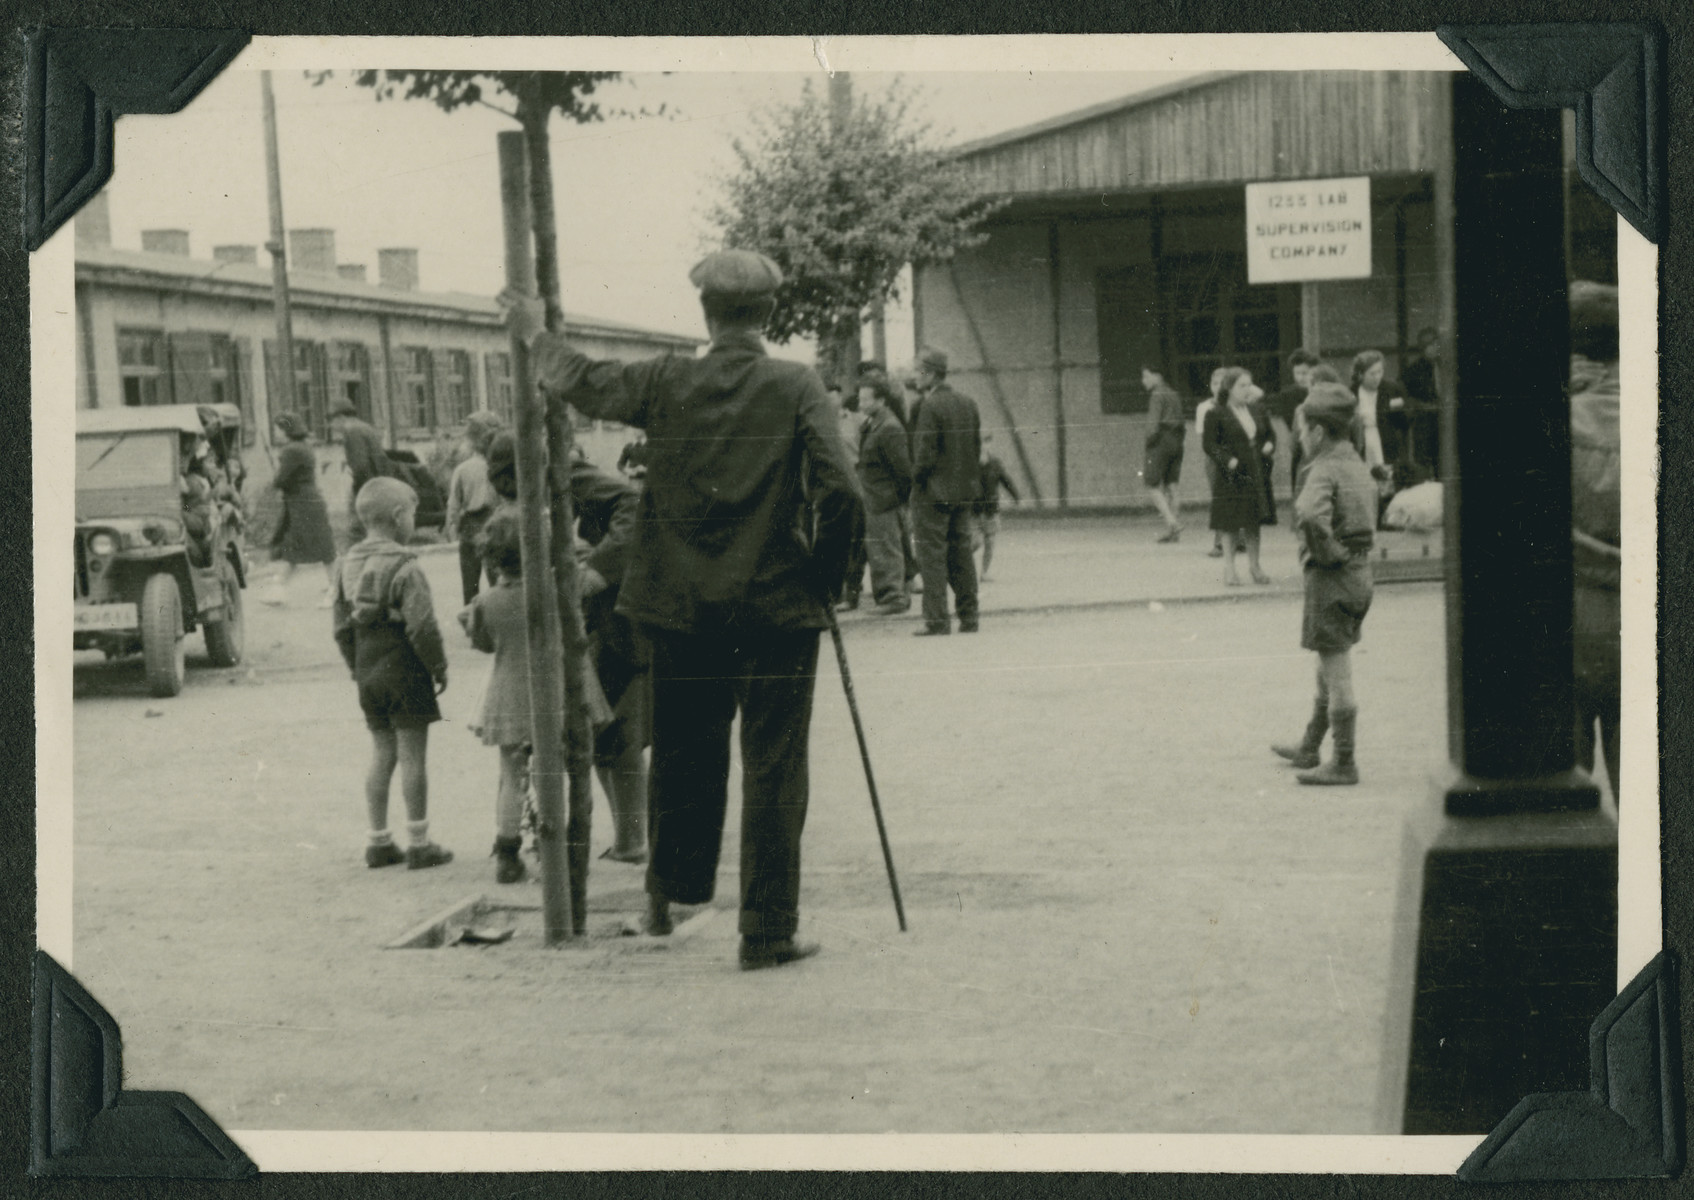 Children and adults gather on a street in the Ziegenhain displaced persons camp.